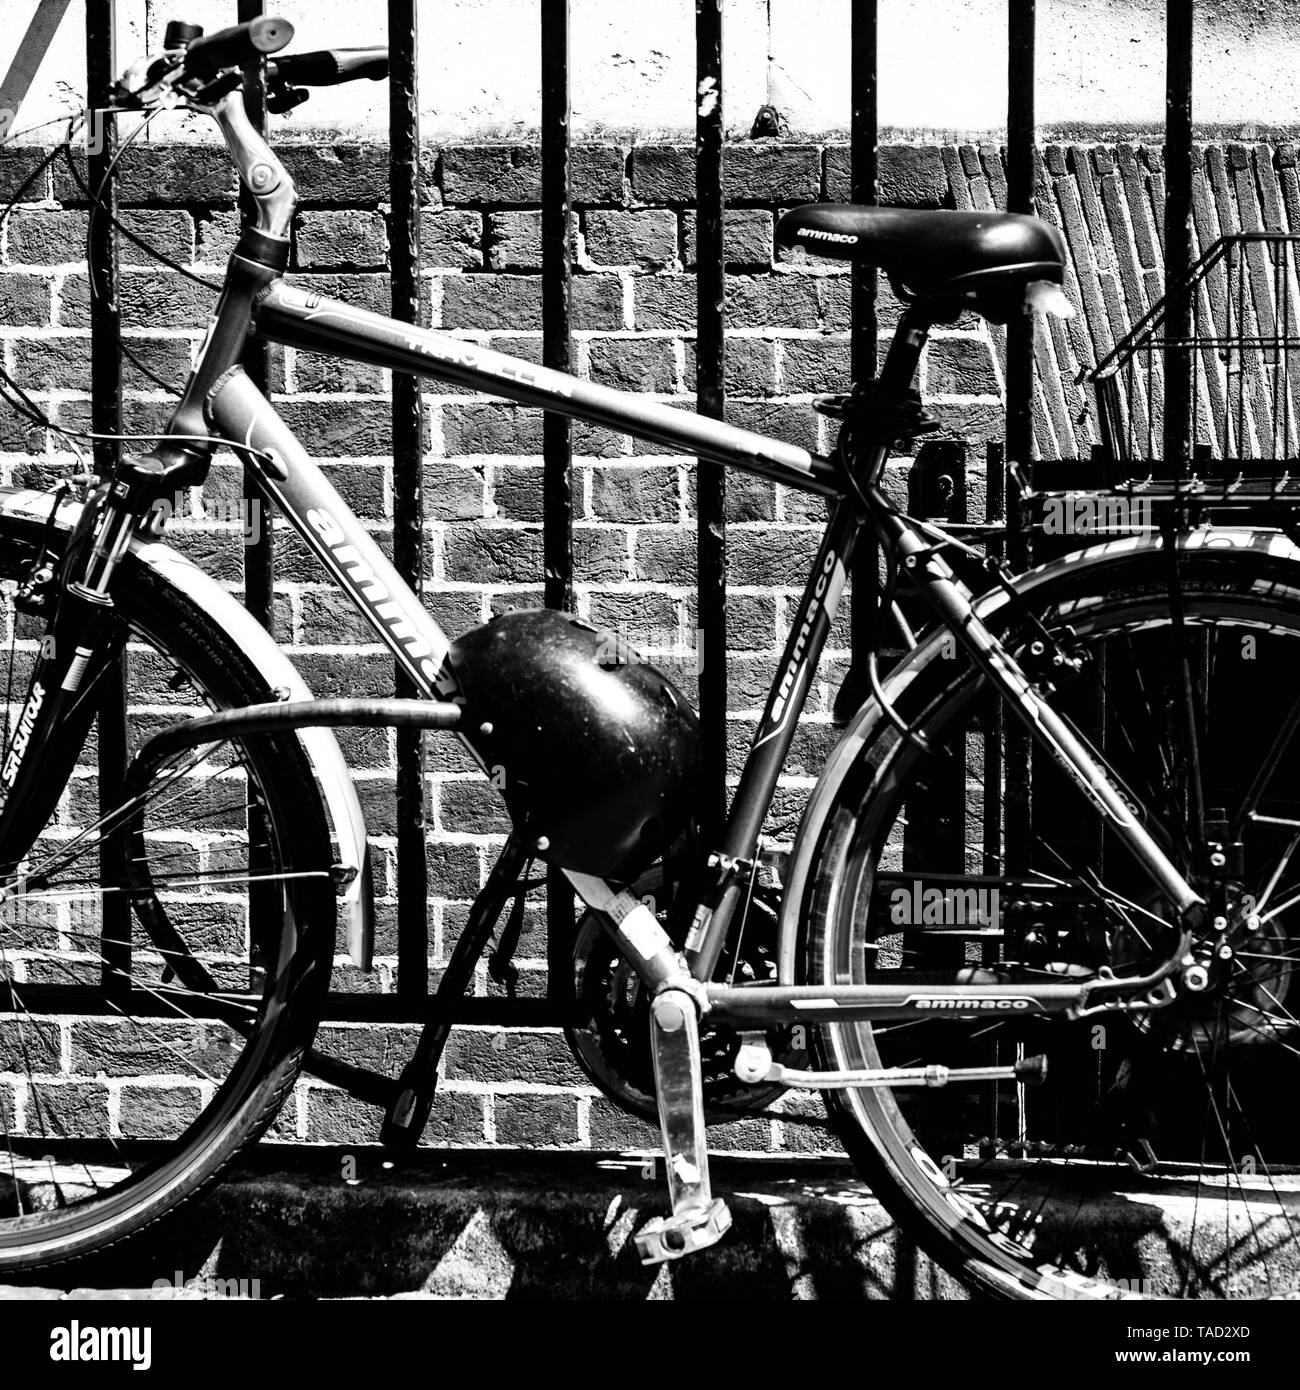 Bicycle Tied Onto a Steel of Iron Fence For Security To Prevent Theft In London - Stock Image